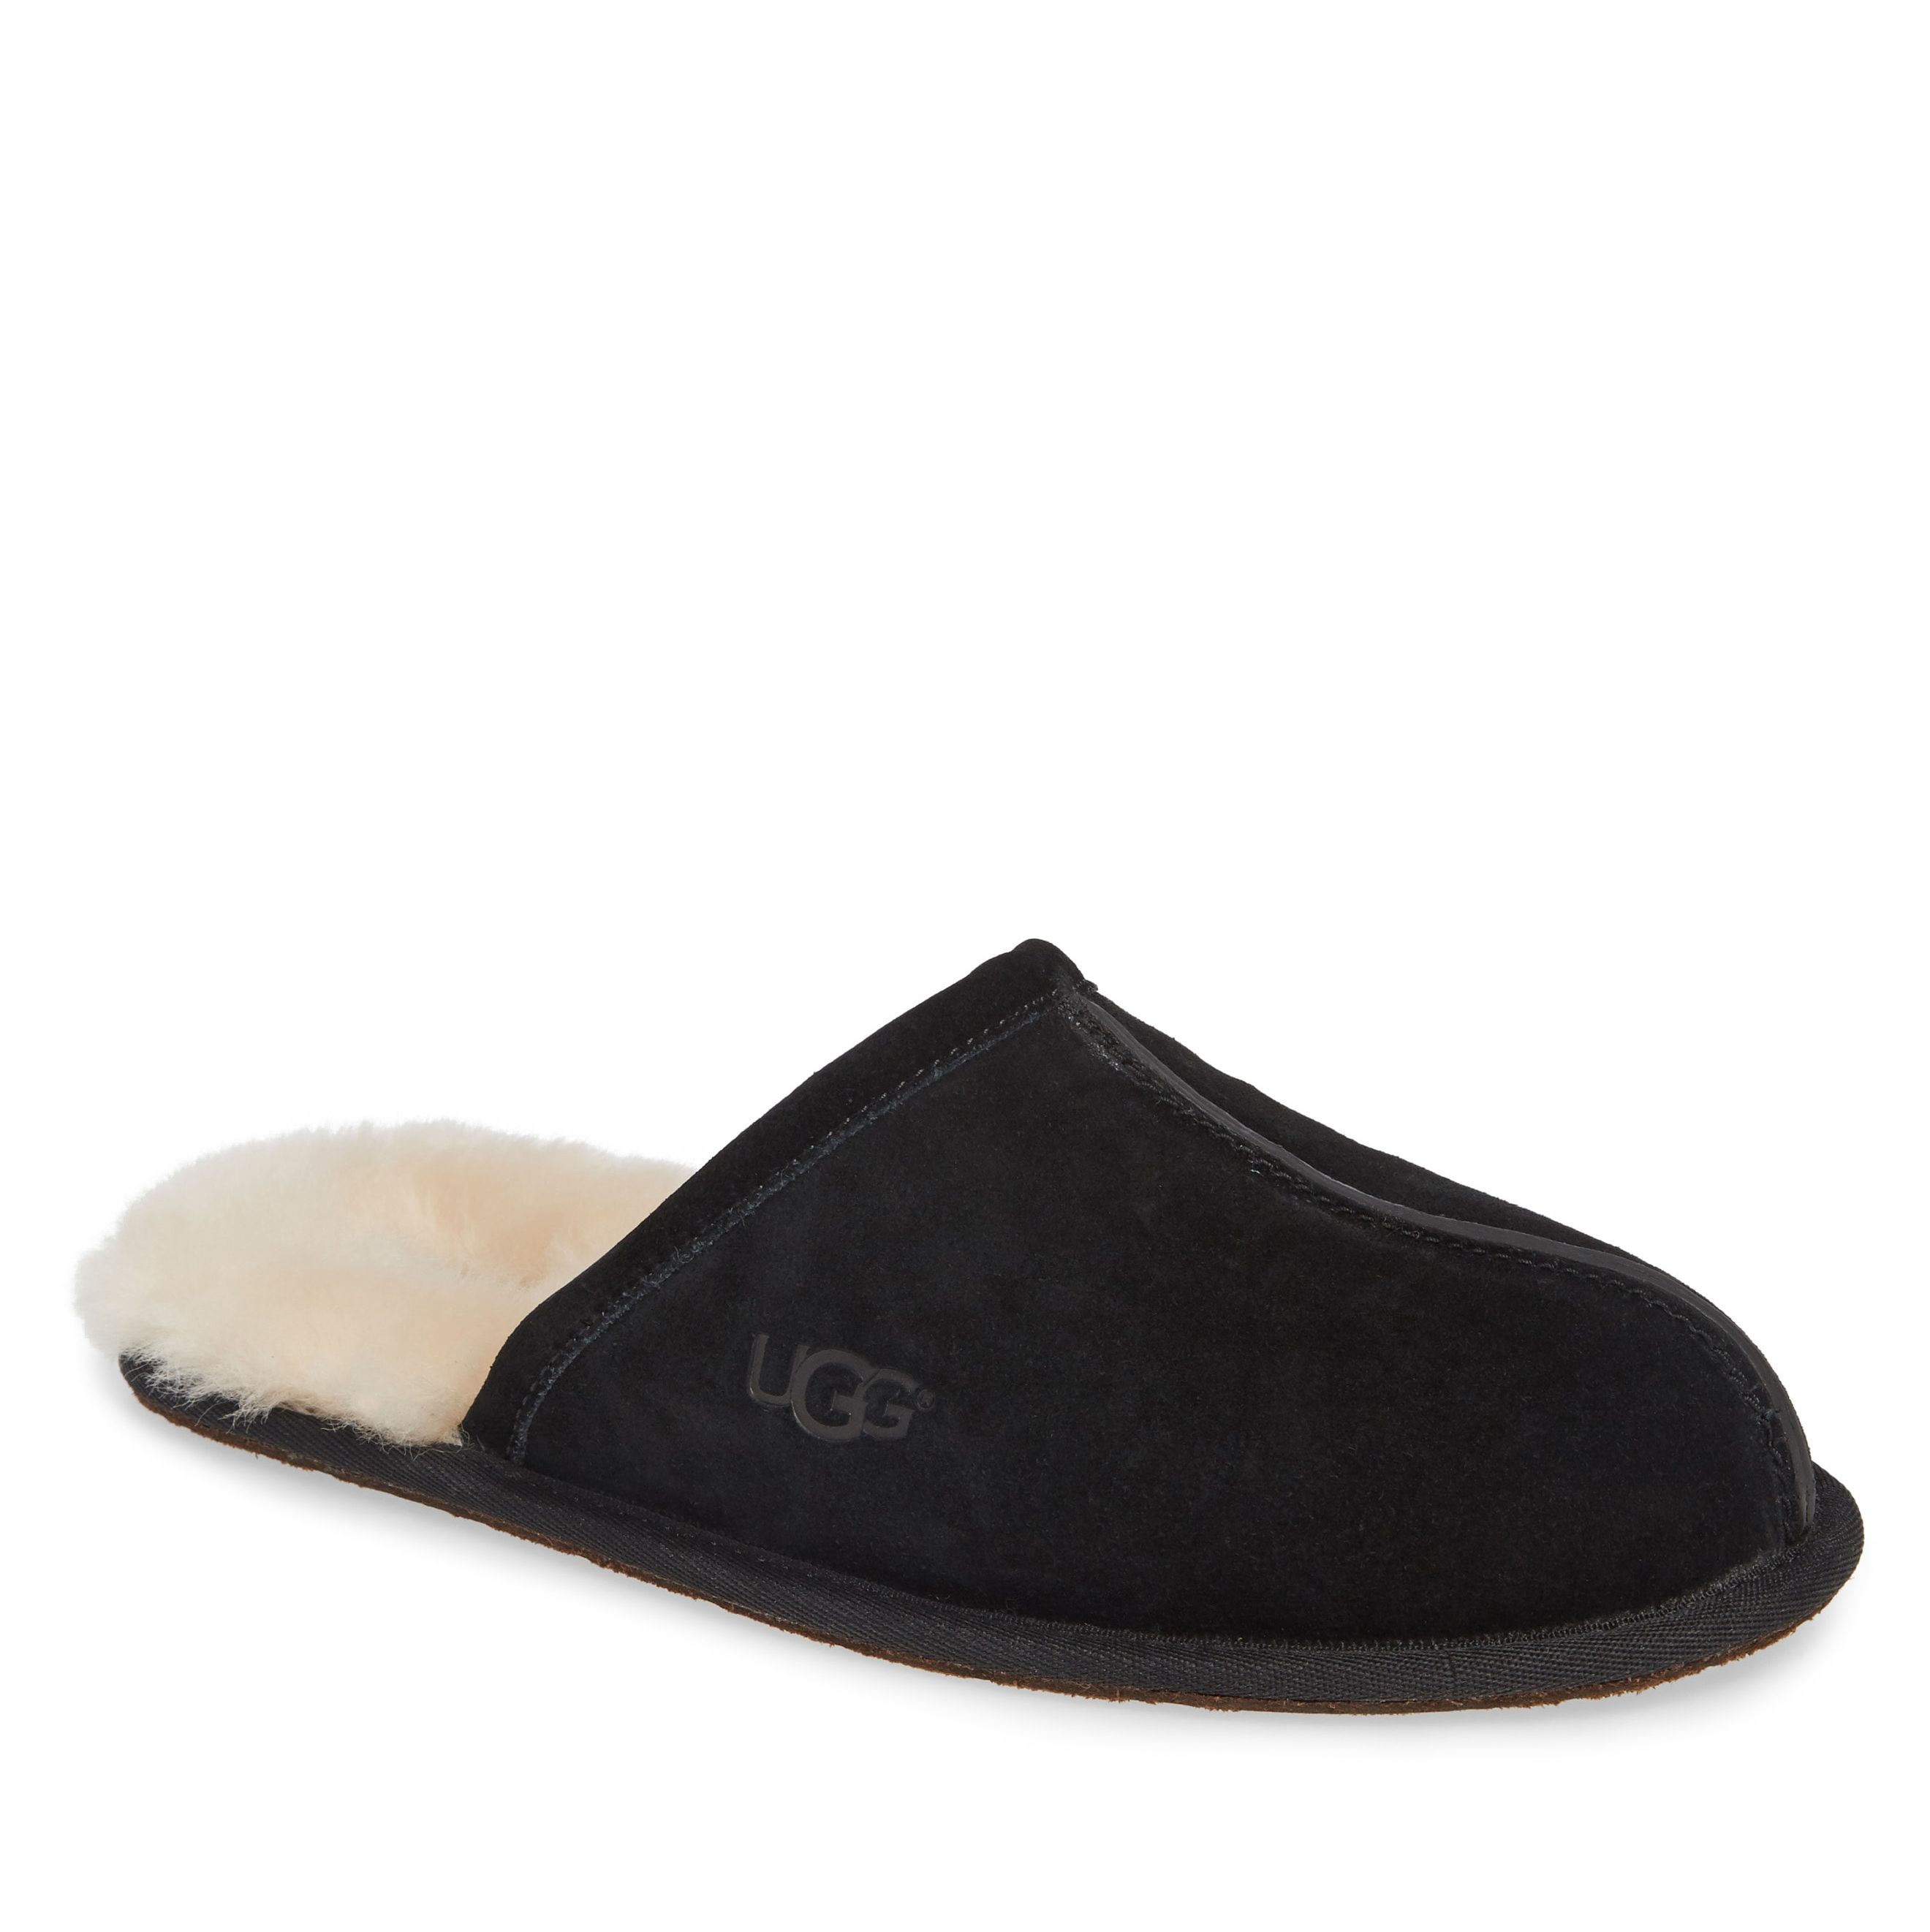 Scuff Slipper UGG nordstrom.com $79.95 SHOP NOW Help your dad take a load off with these comfy slippers made for lazy Sundays lounging around the house.